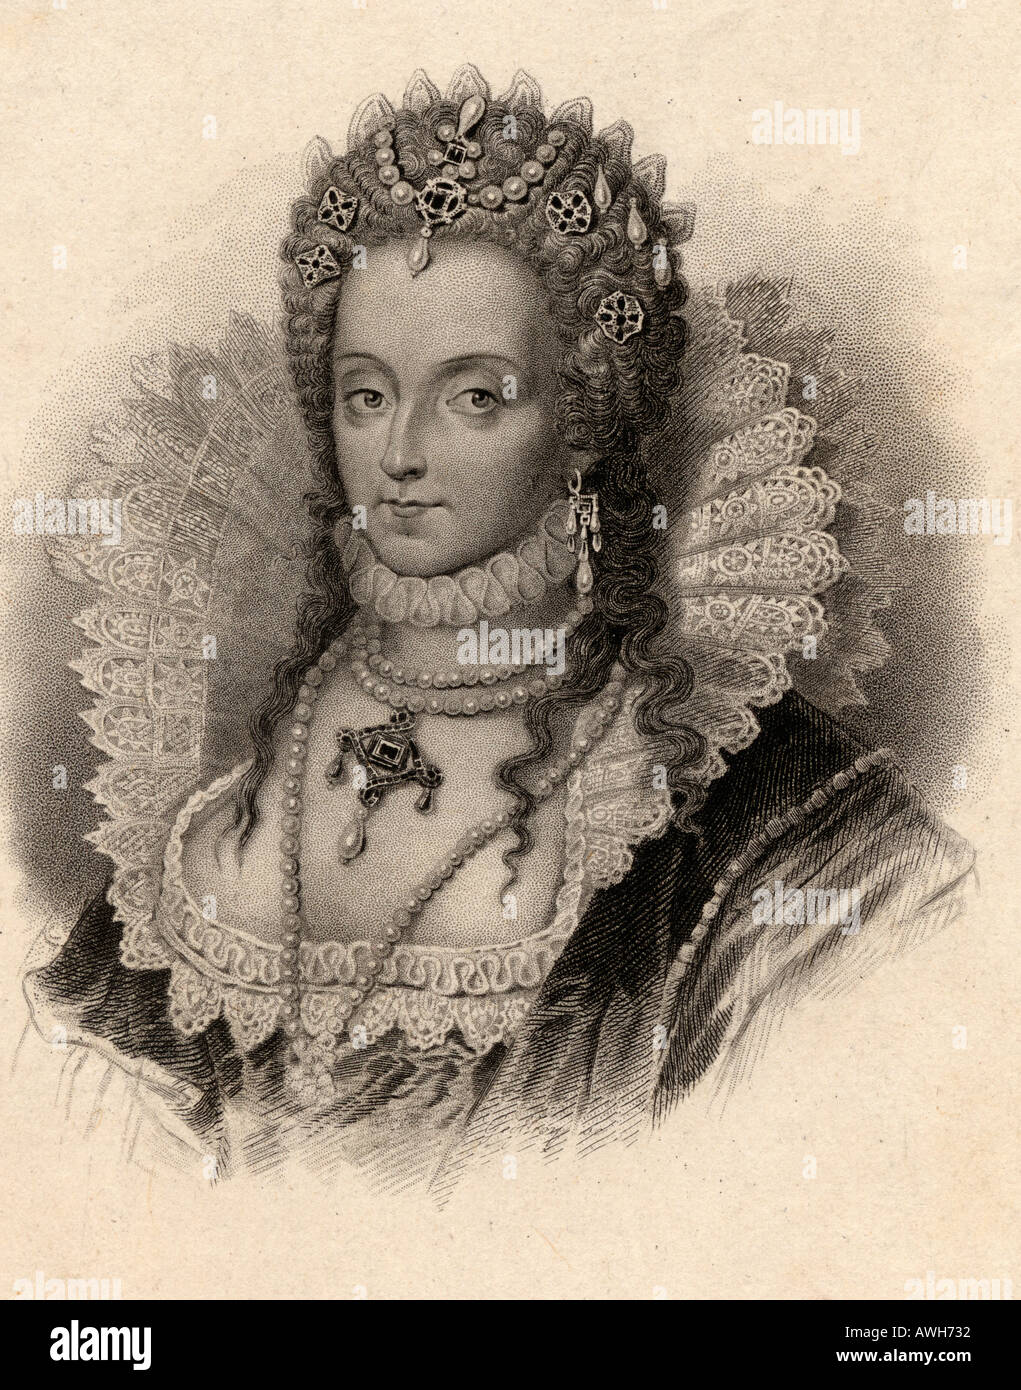 Elizabeth I, 1533 - 1603.  Queen of England.  From an old print - Stock Image